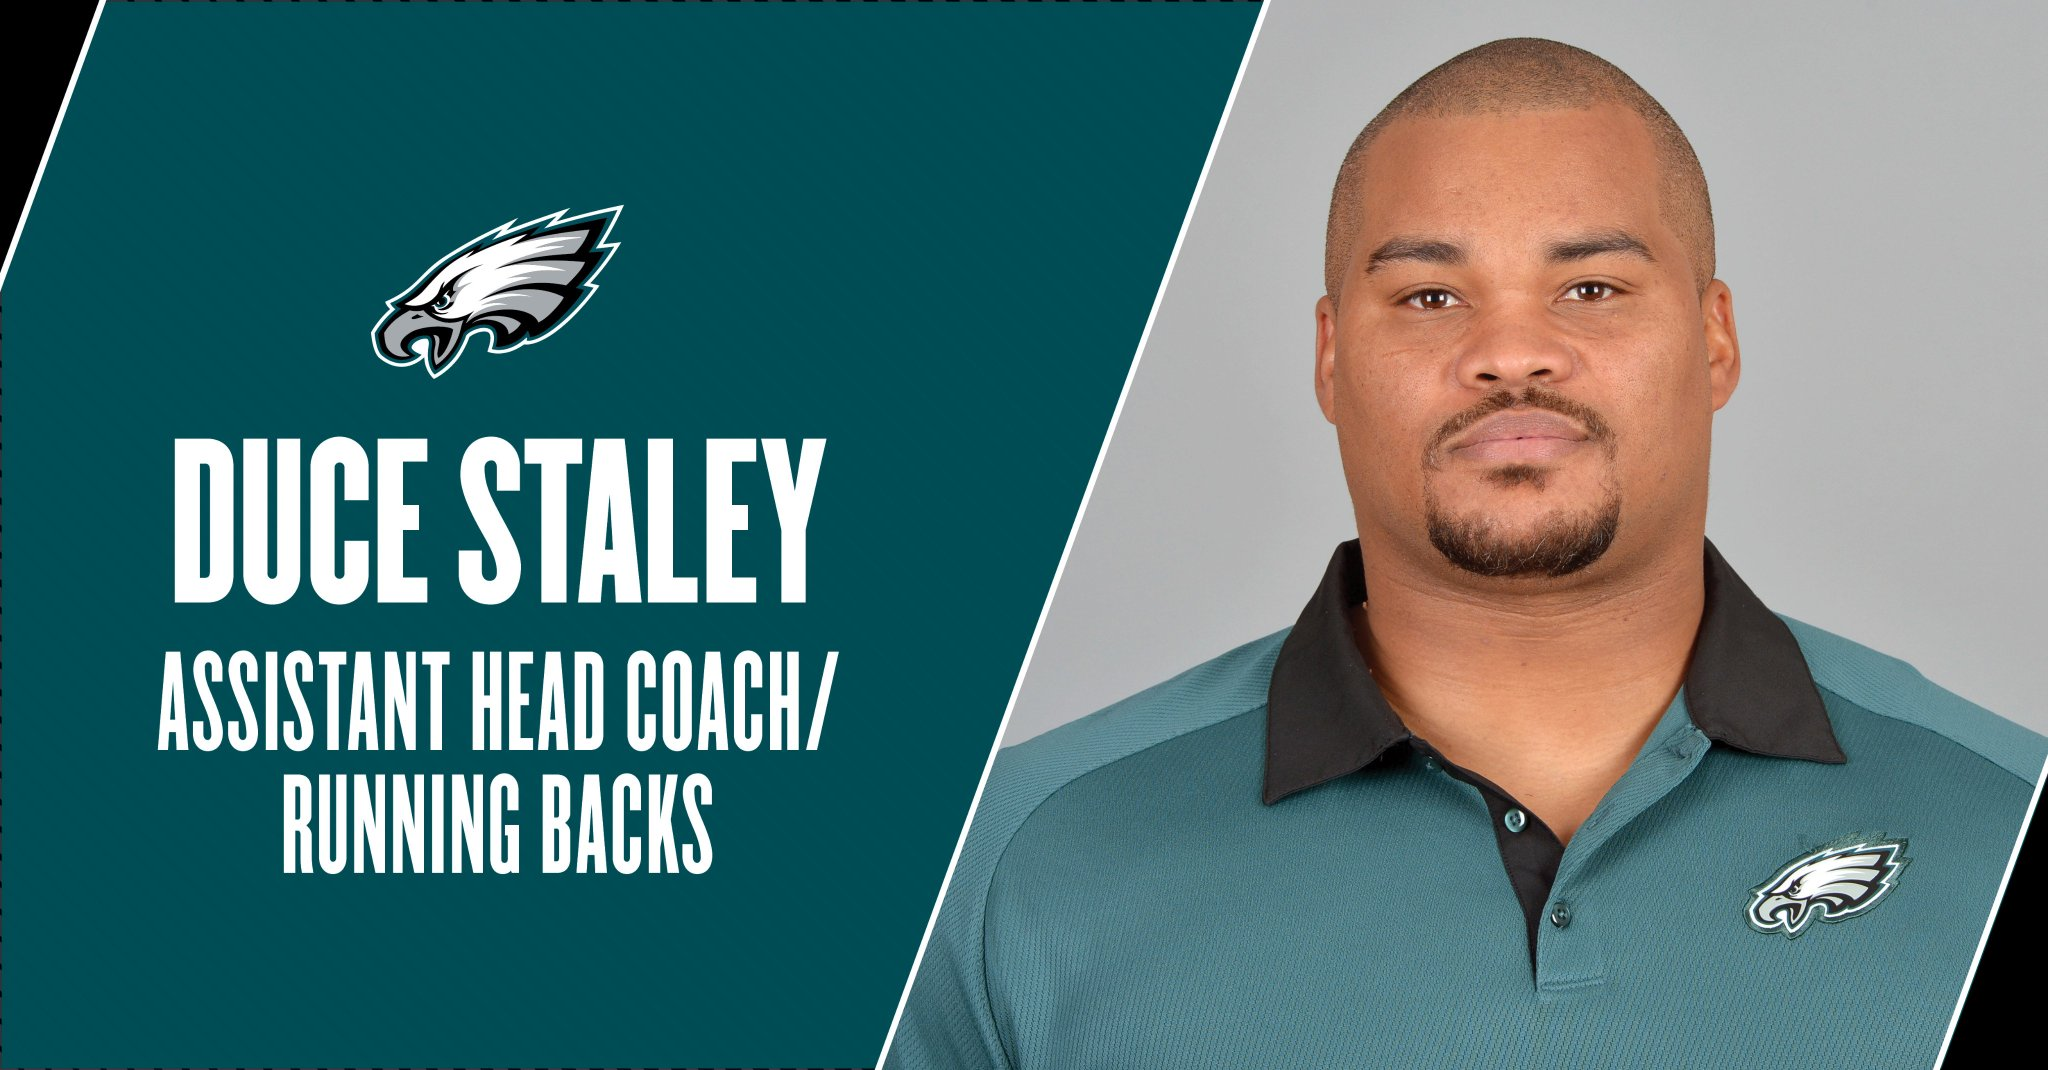 Duce Staley has been promoted to assistant head coach/running backs.  #FlyEaglesFly https://t.co/T4FT6ZCct9